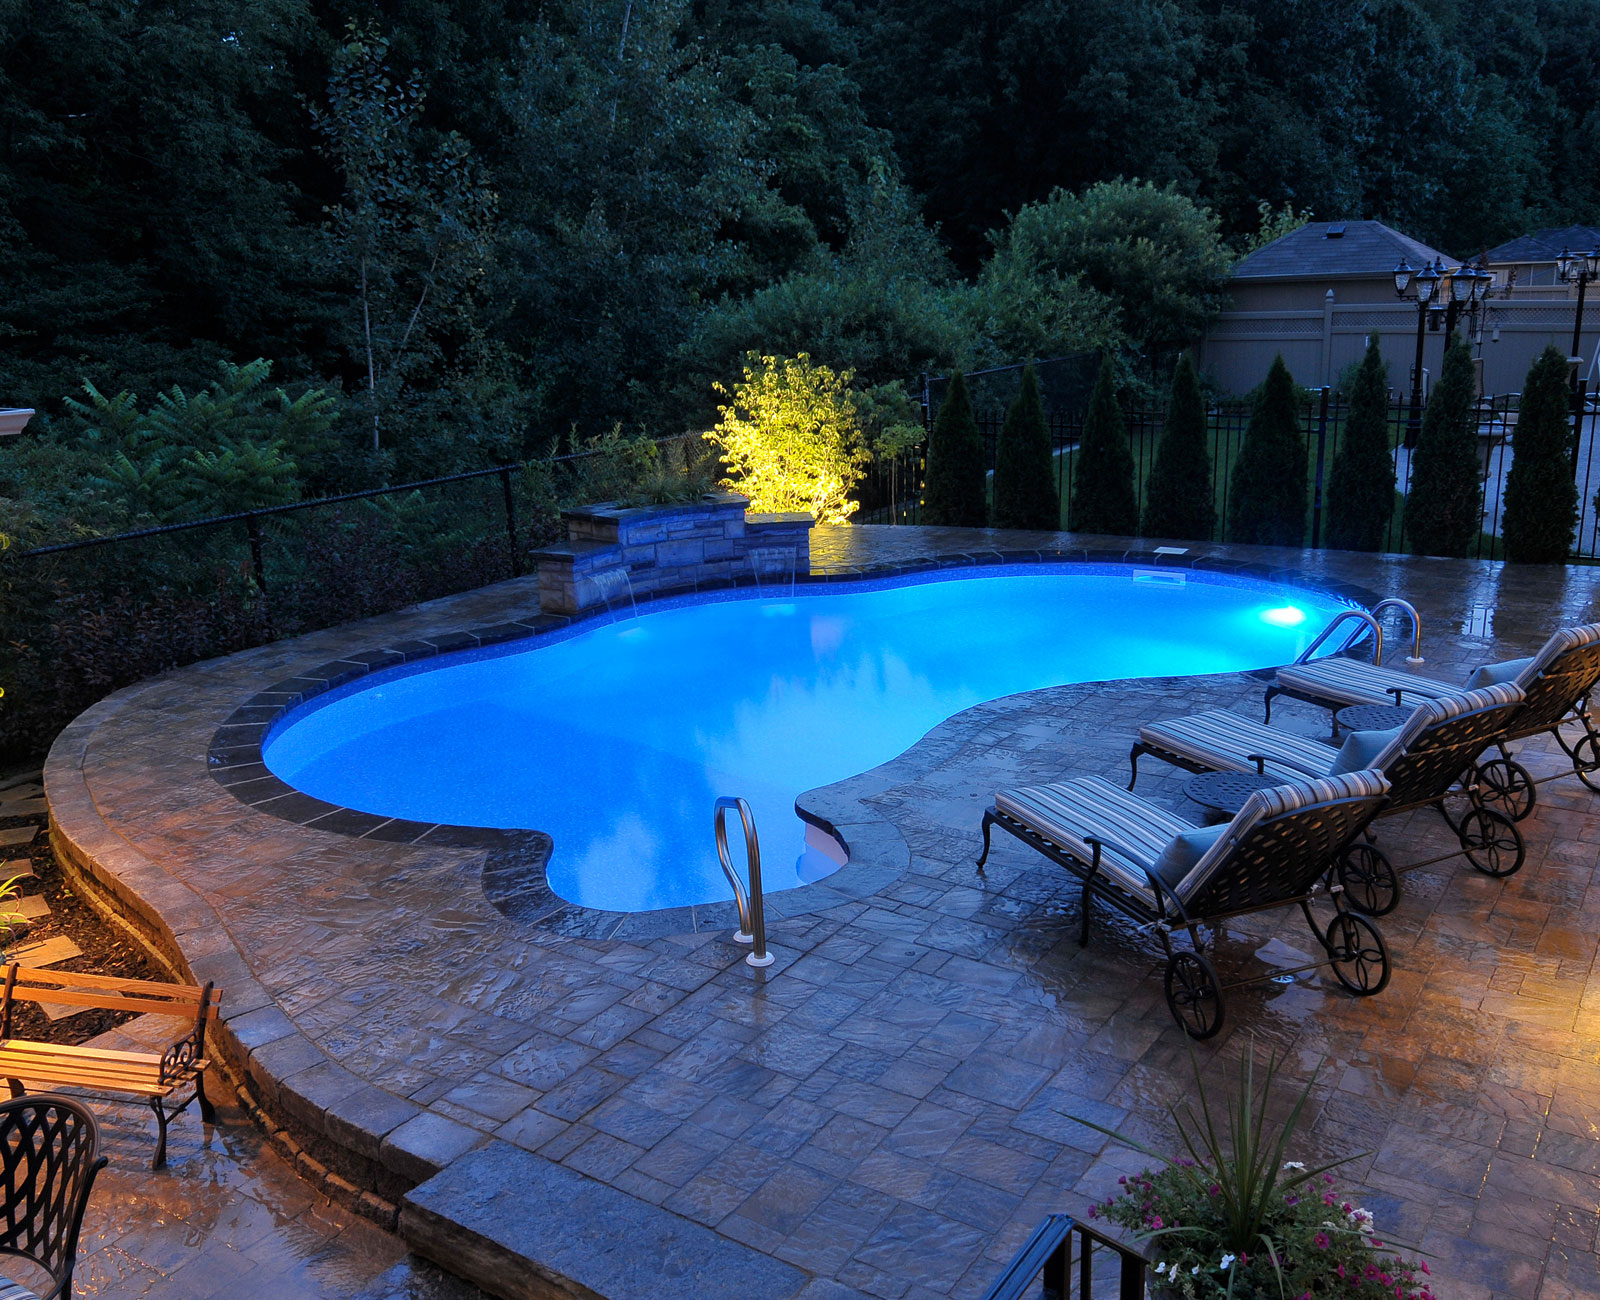 Inground pool closing instructions buds spas pools - Can you over shock a swimming pool ...